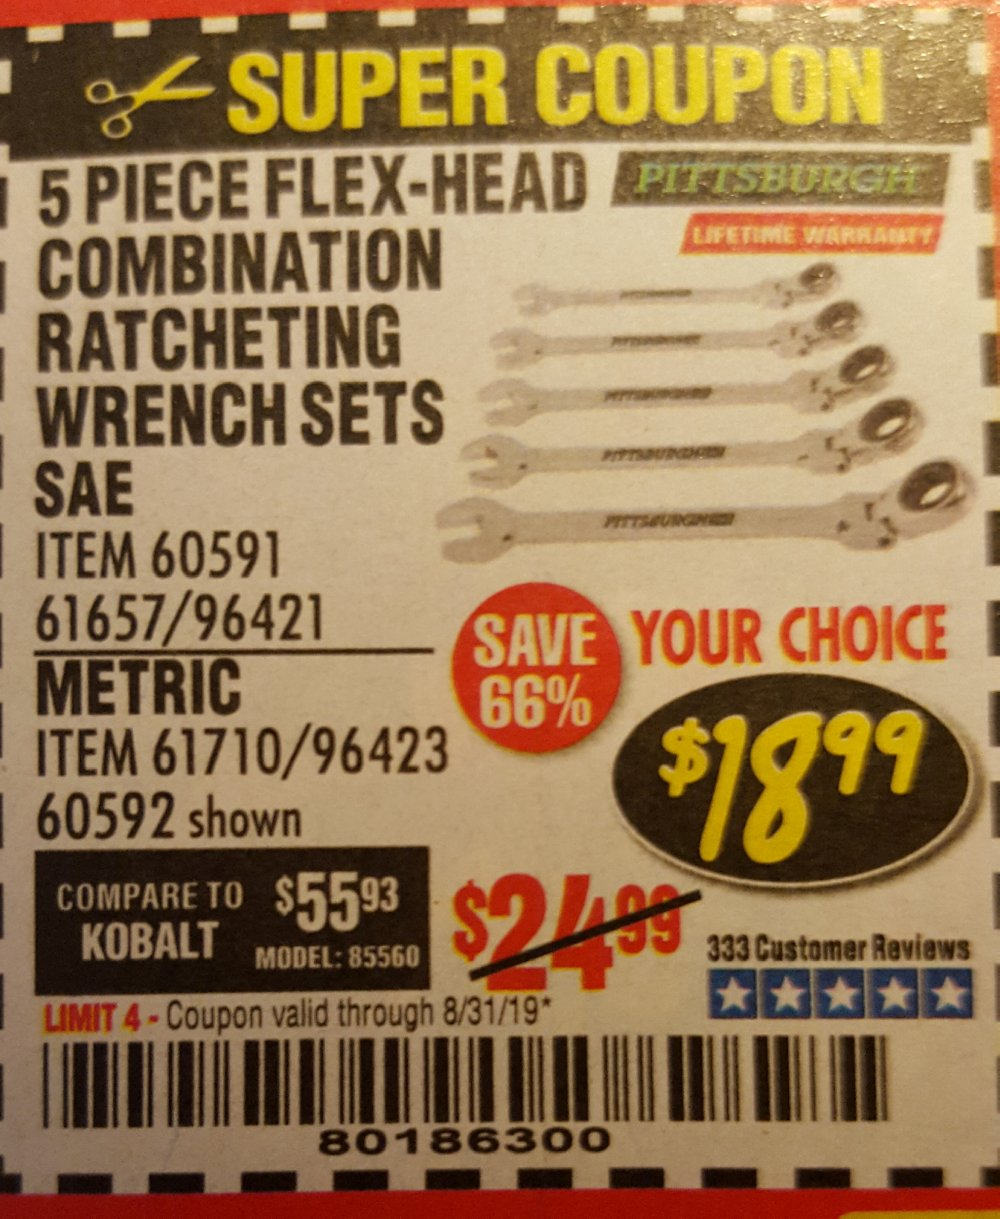 Harbor Freight Coupon, HF Coupons - 5 Piece Flex-Head Combination Ratching Wrench Set